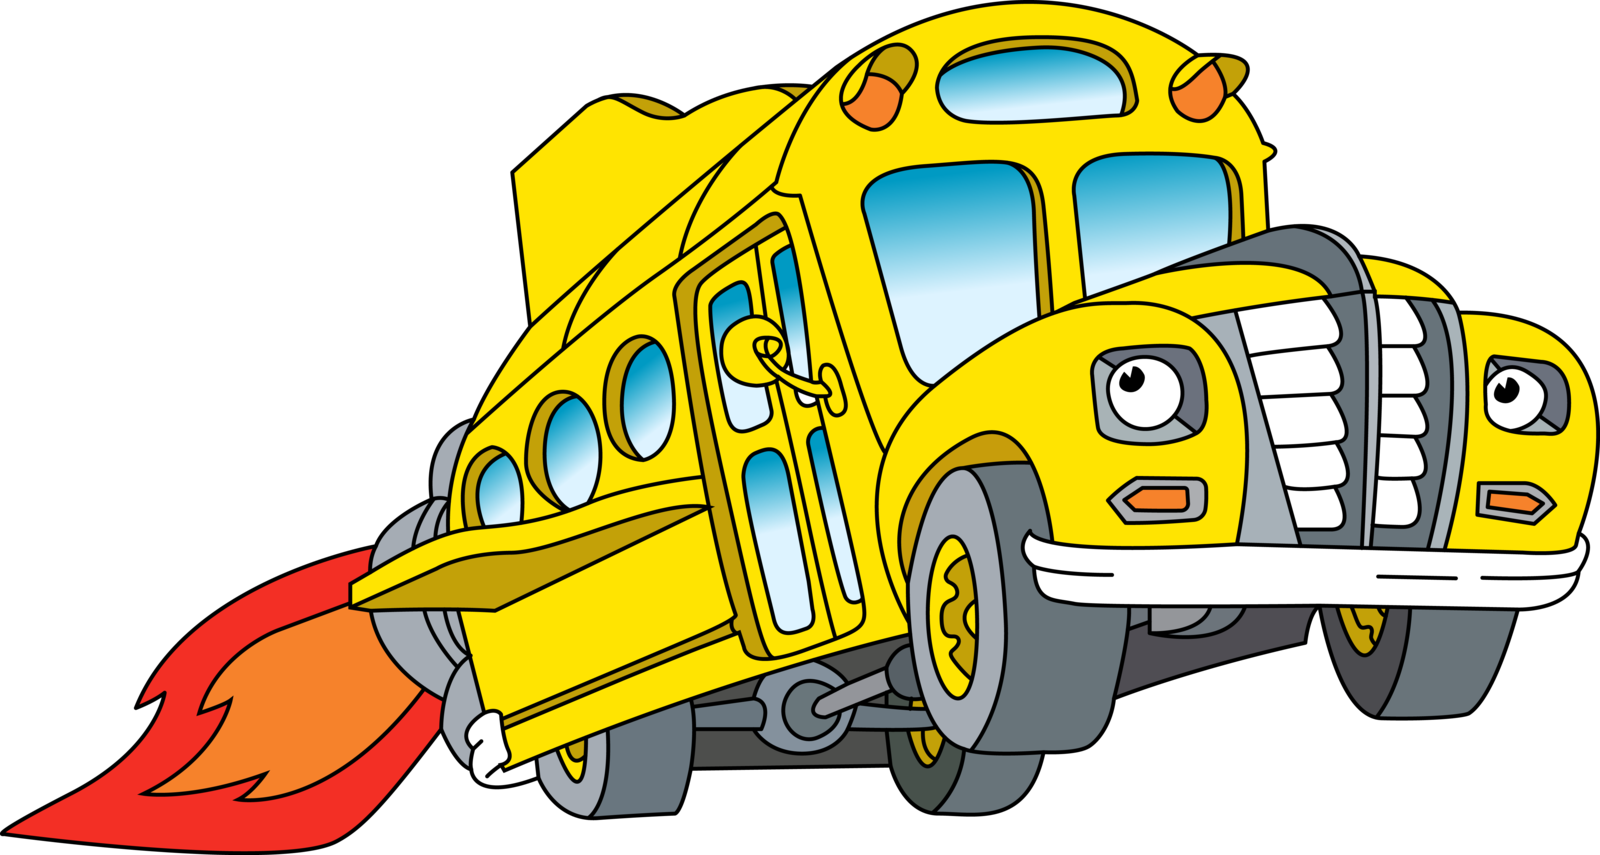 The Magic School Bus (character)